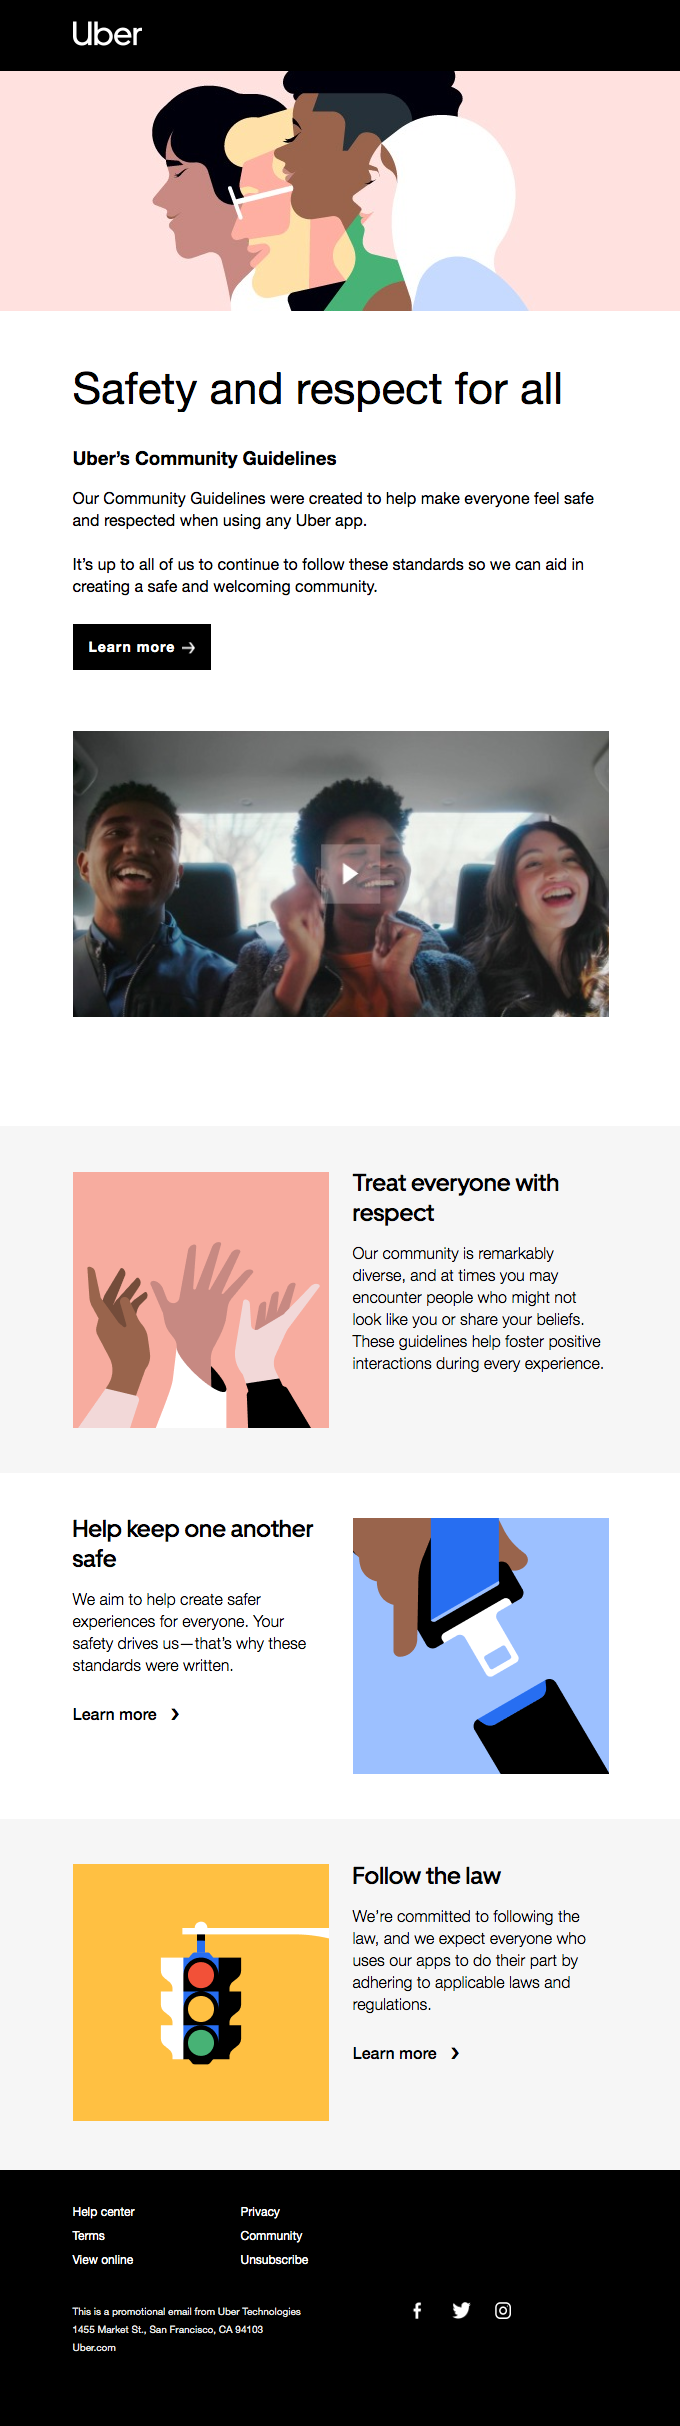 Uber email on diversity and inclusion